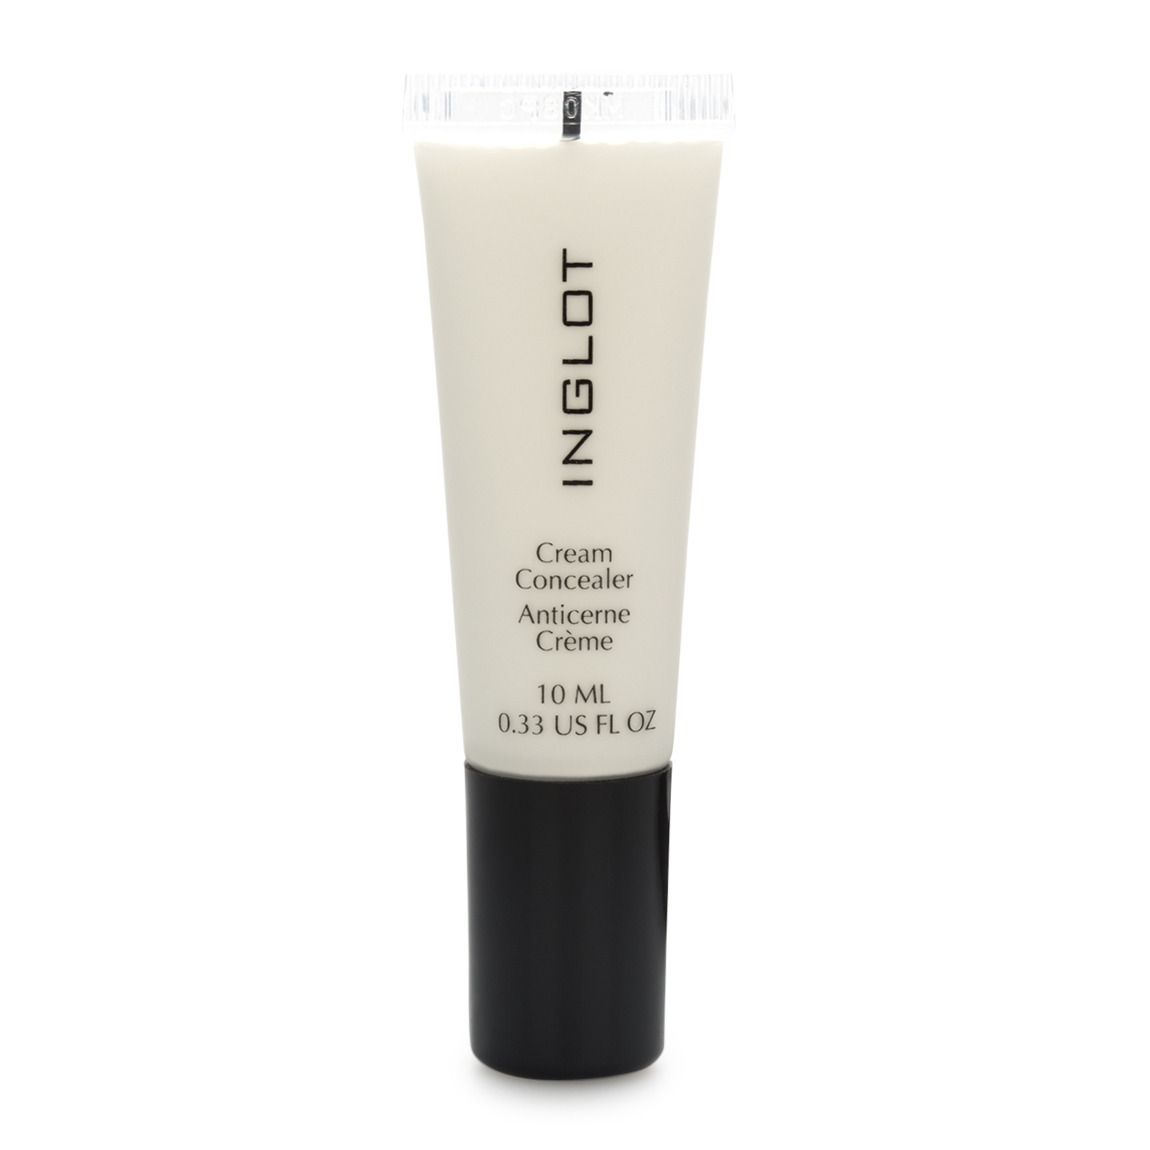 Inglot Cosmetics Cream Concealer 37 alternative view 1.